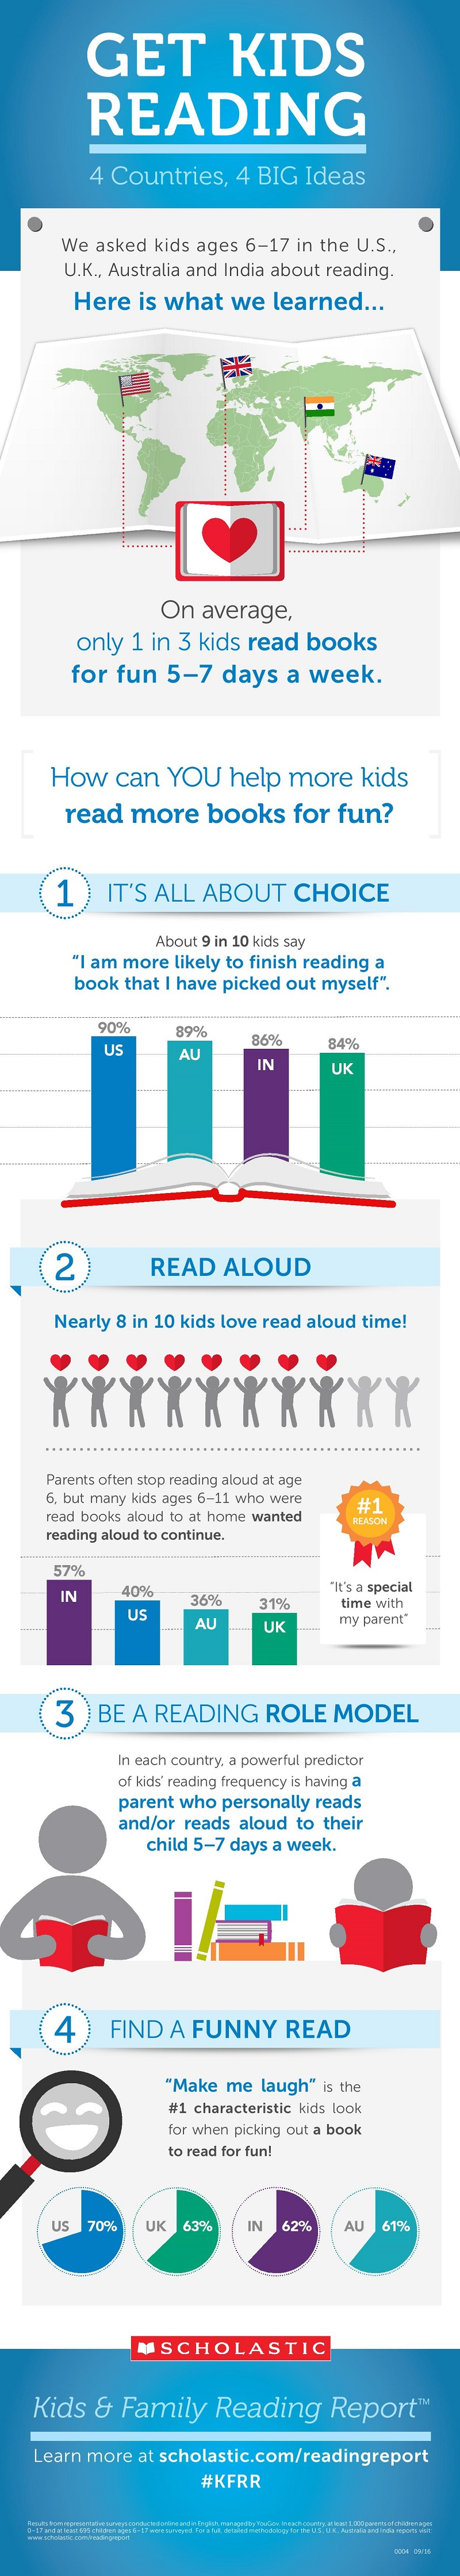 Get Kids Reading Infographic (GalleyCat)